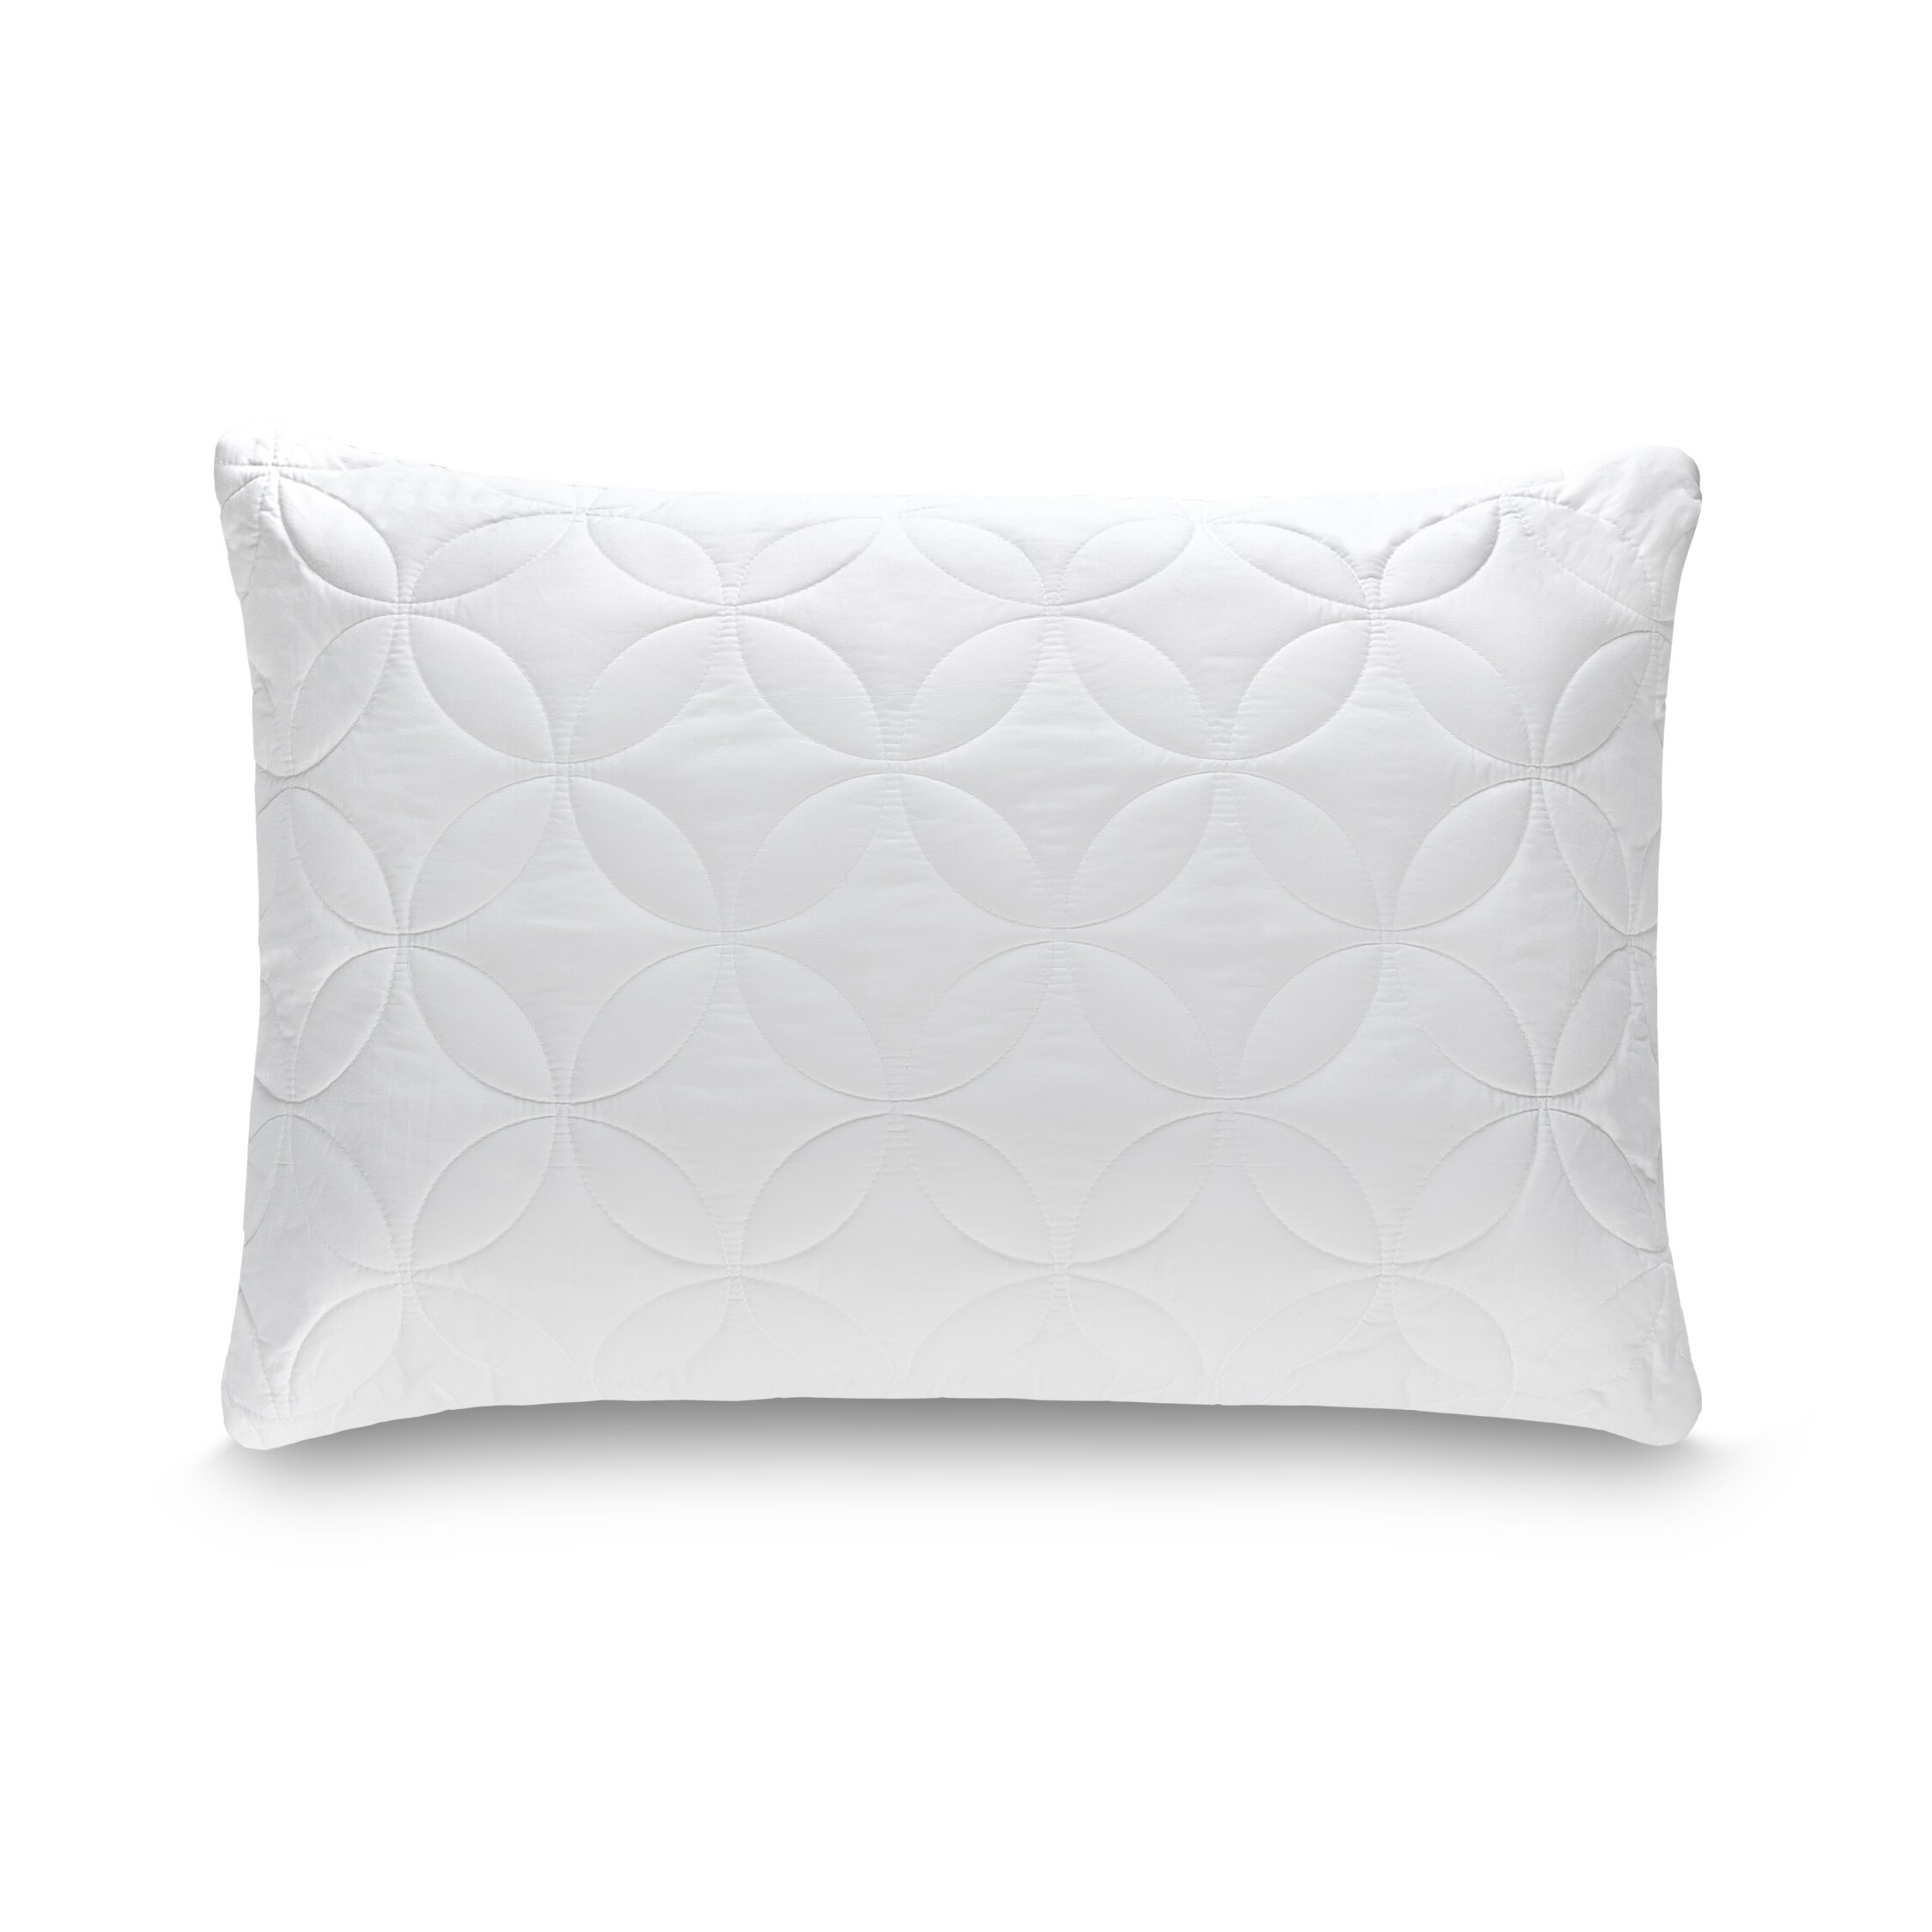 Tempur Pedic Traditional Pillow Extra Soft Reviews : Tempur-Pedic Cloud Soft & Conforming Pillow & Reviews Wayfair